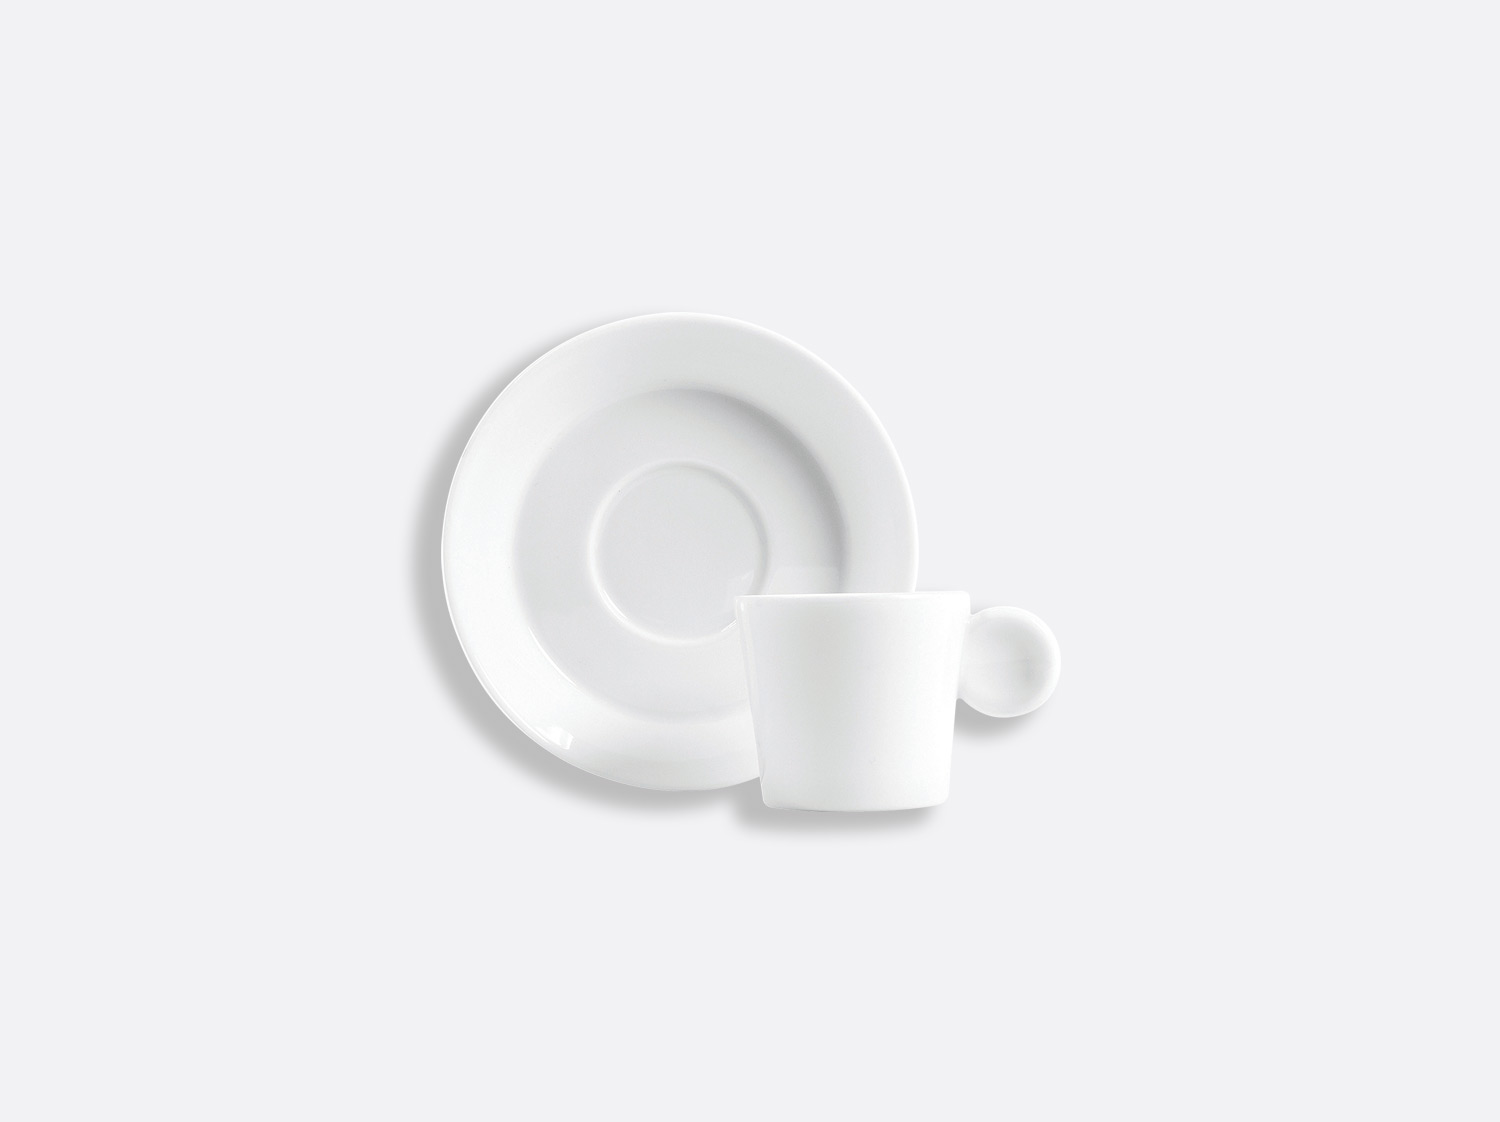 China Irazu coffee cup and saucer 4 cl of the collection Fantaisies blanches | Bernardaud